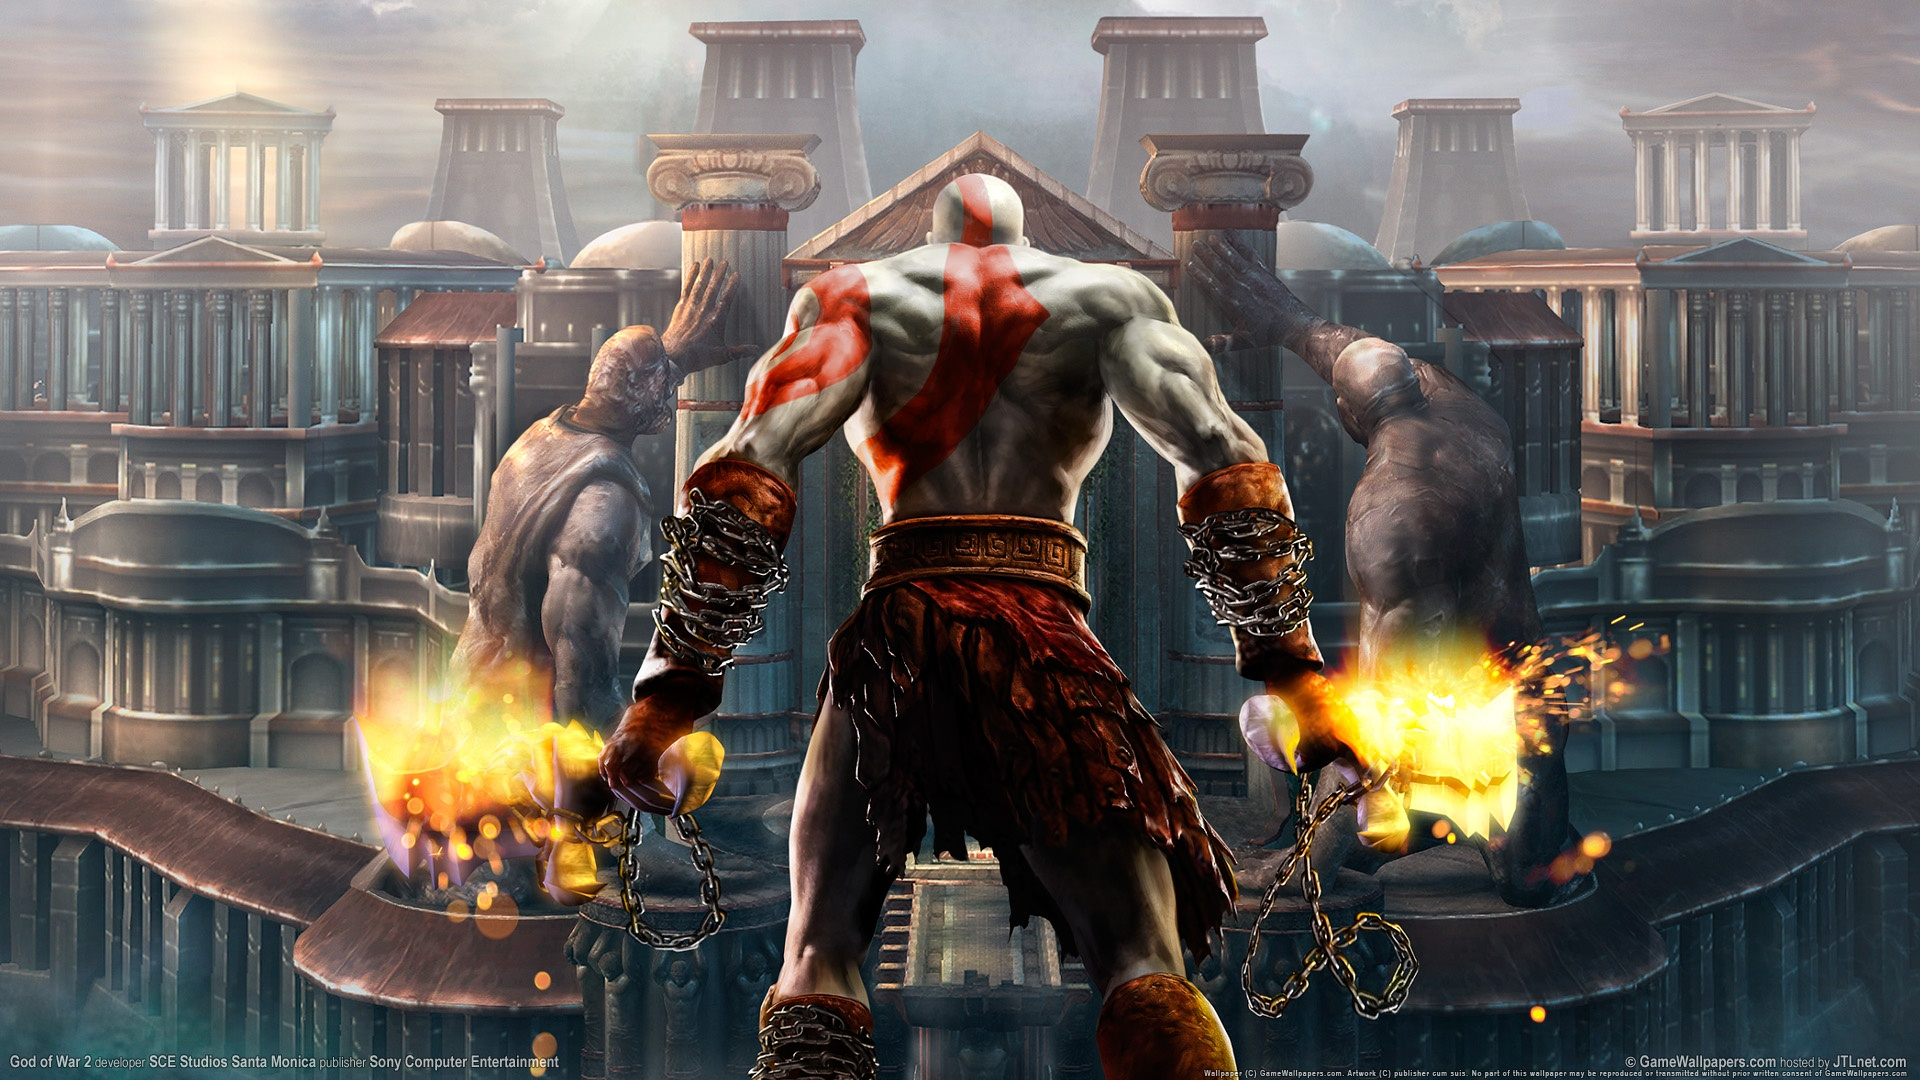 God Of War 2 Hd Wallpapers In Jpg Format For Free Download